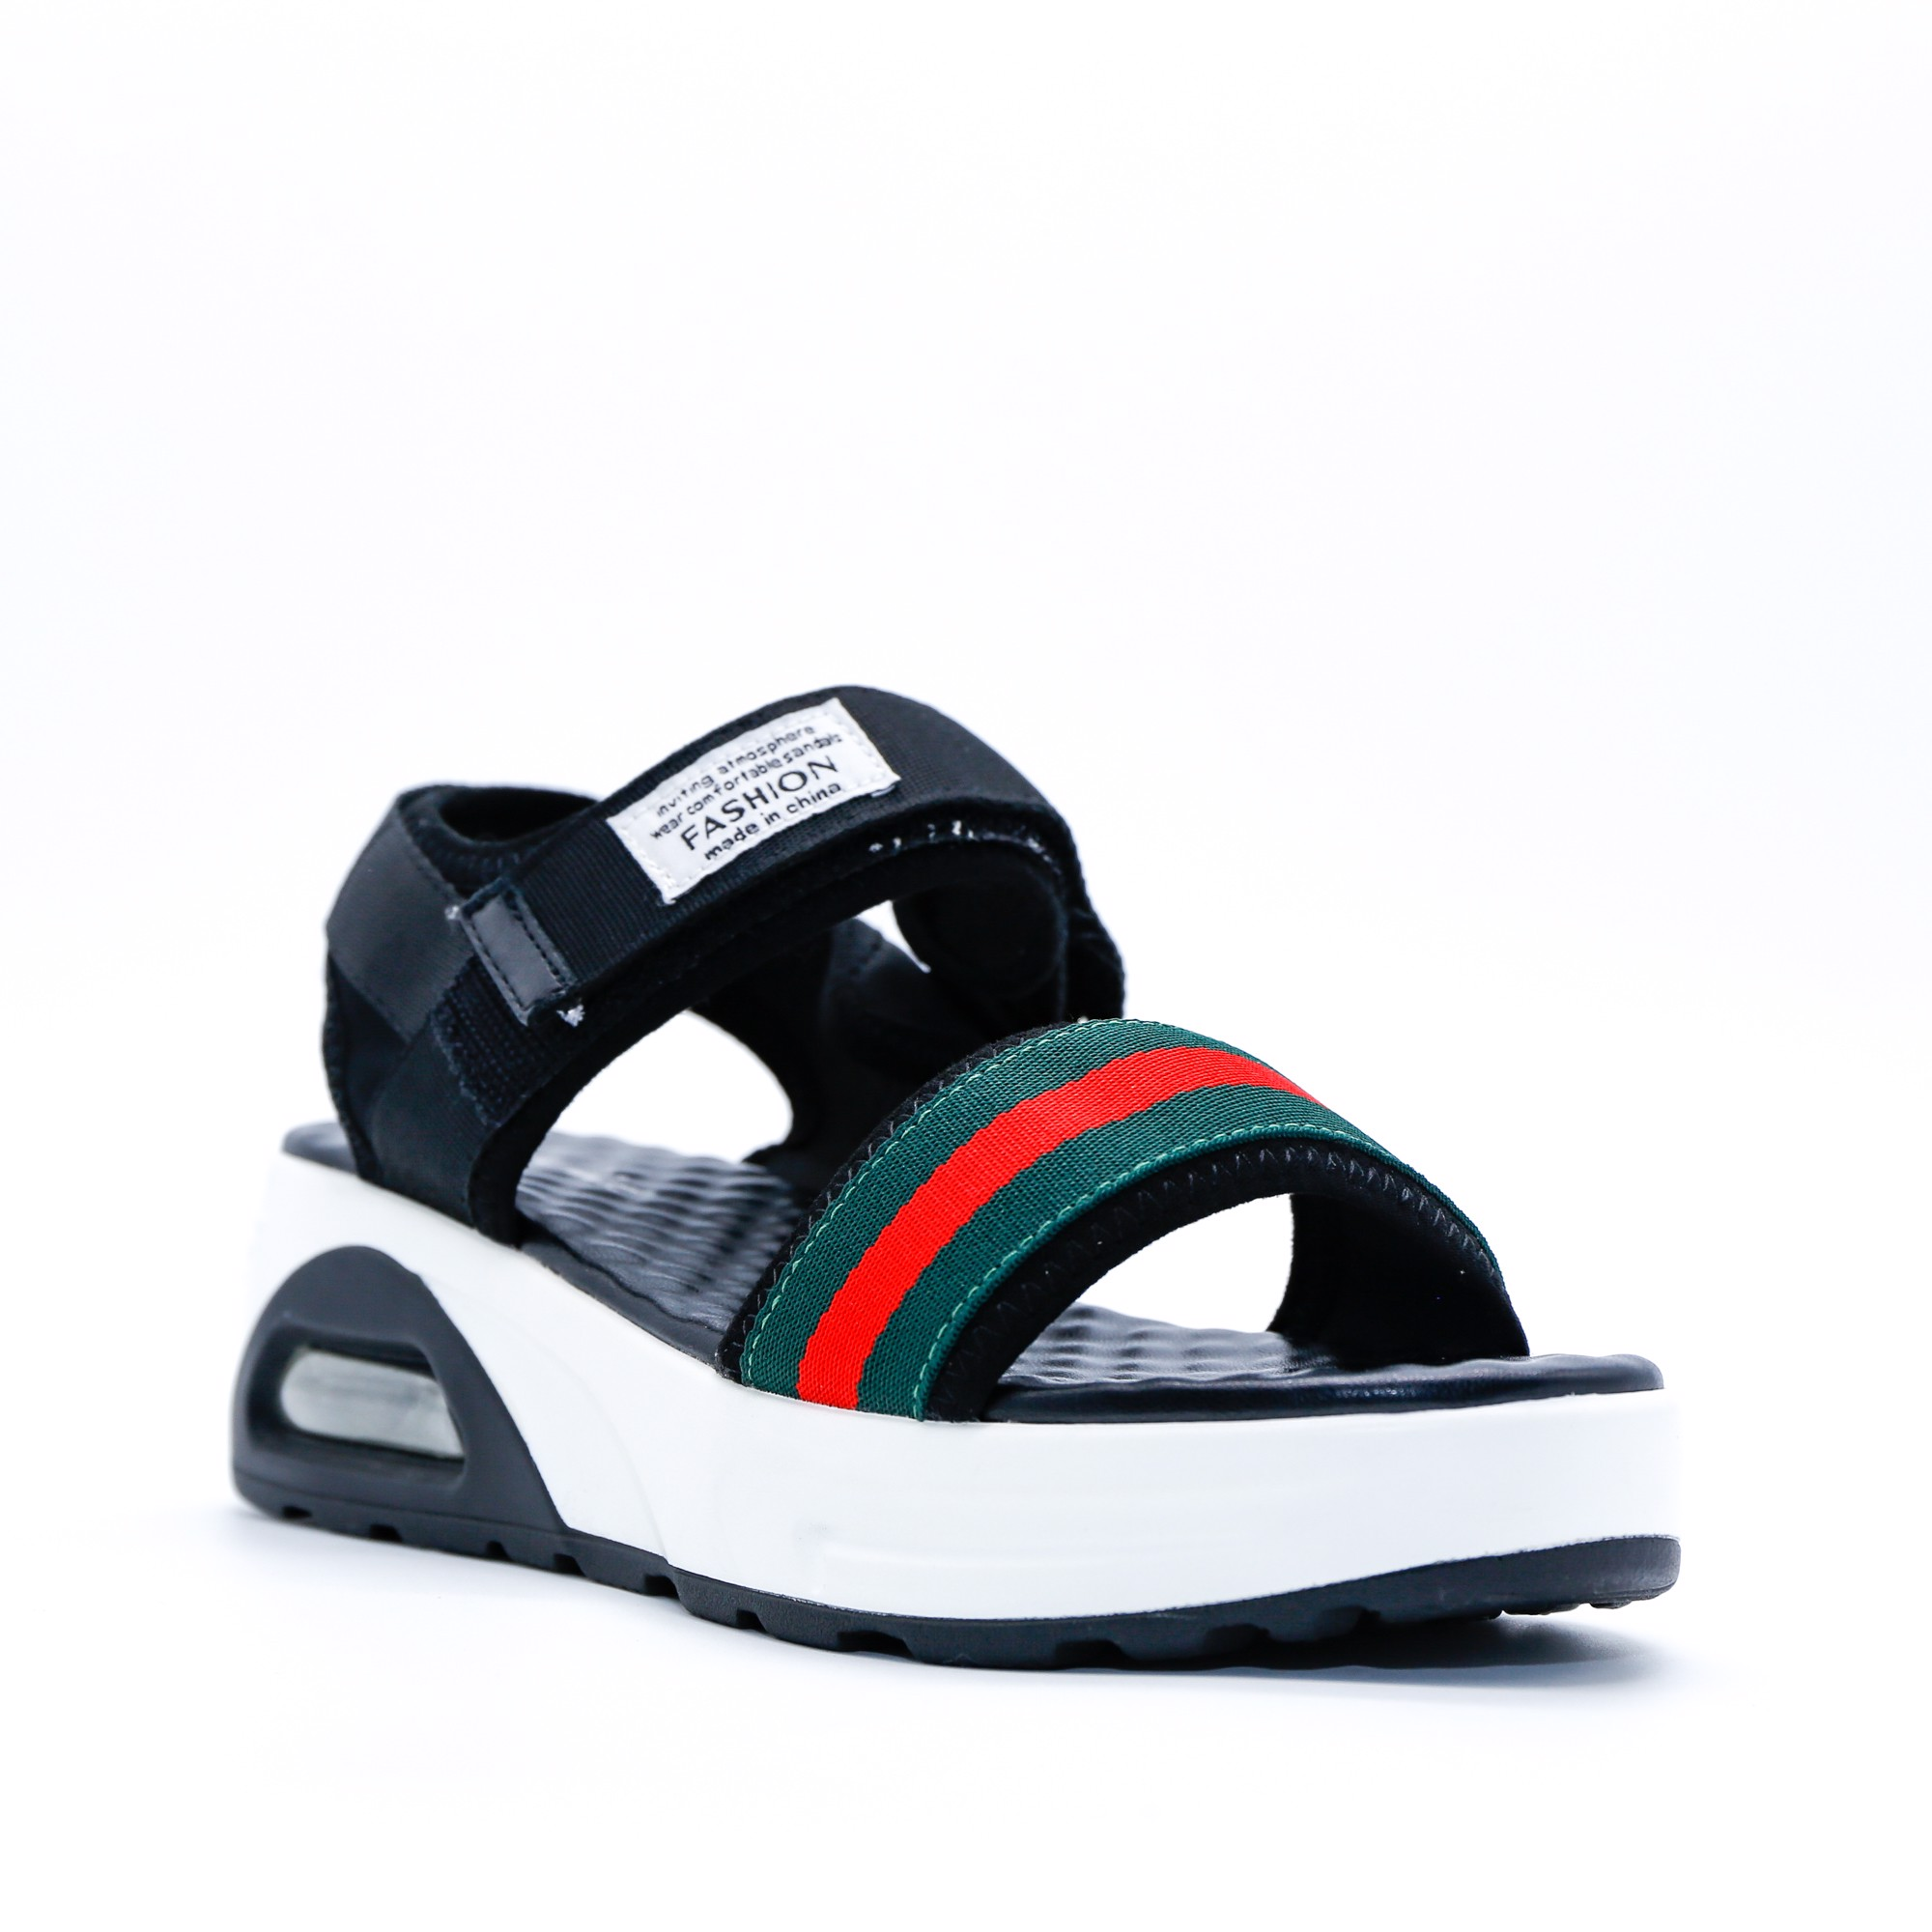 Sandals nữ Exull Mode 1816402740